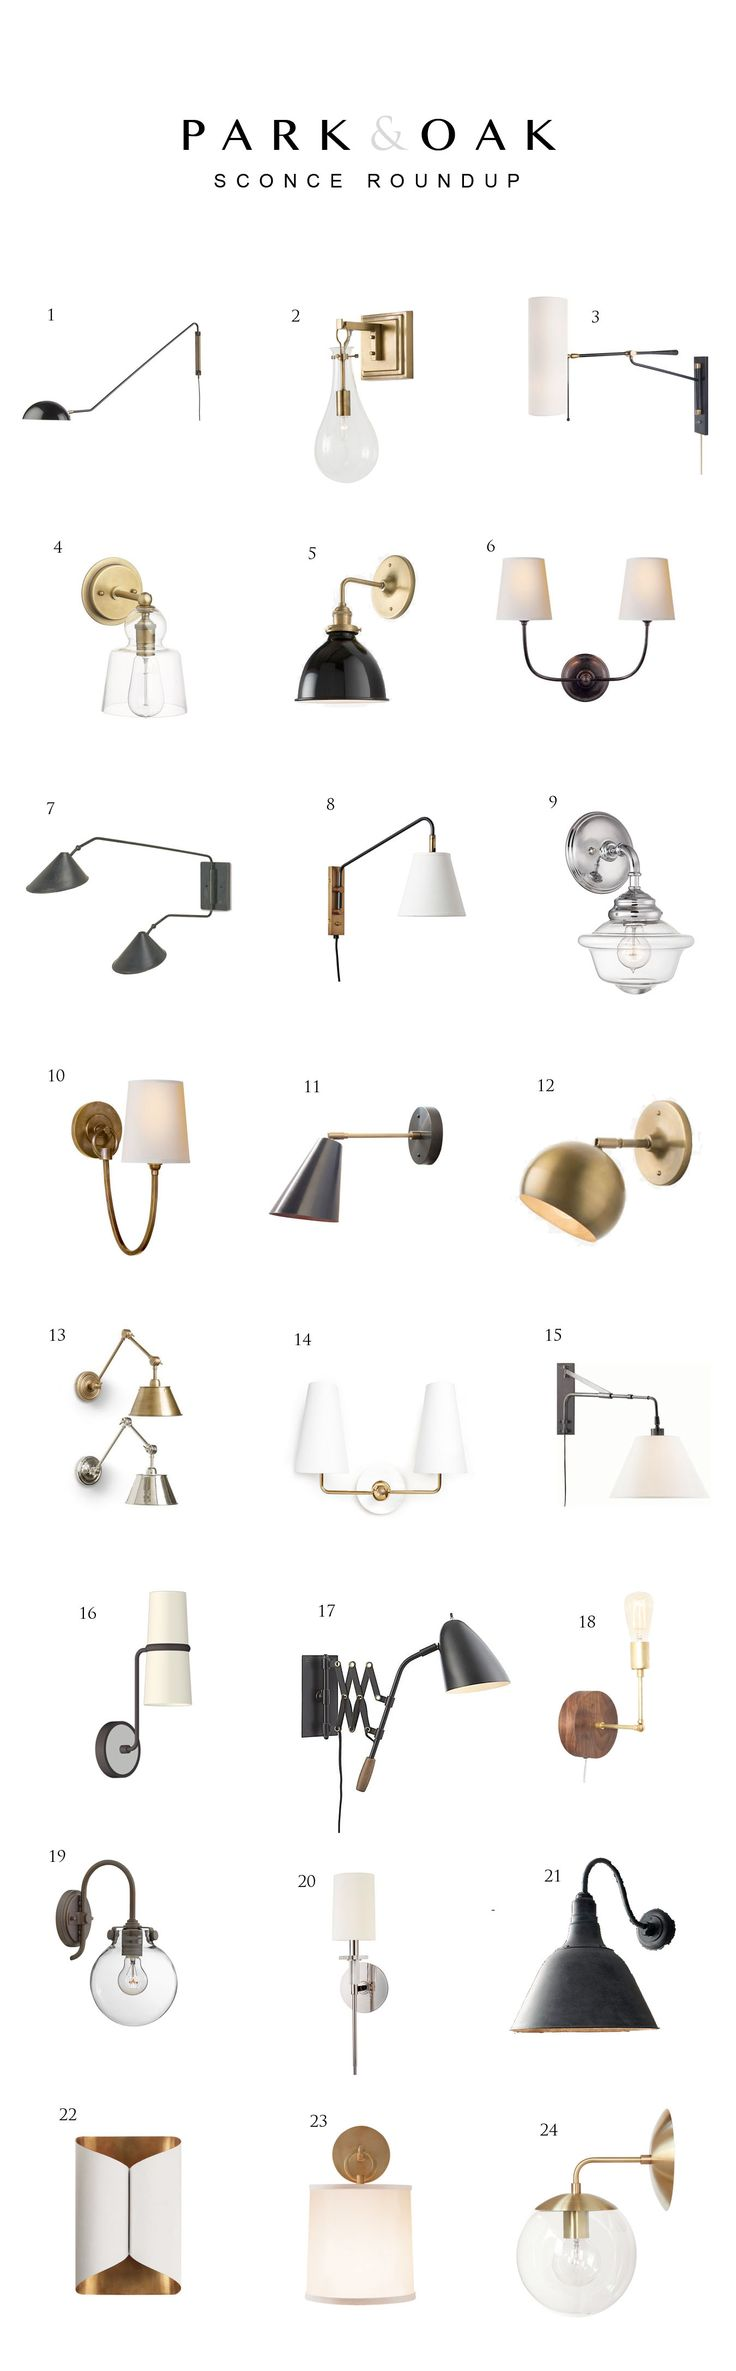 Wall Sconce Roundup. Living Room Wall LightingKitchen ...